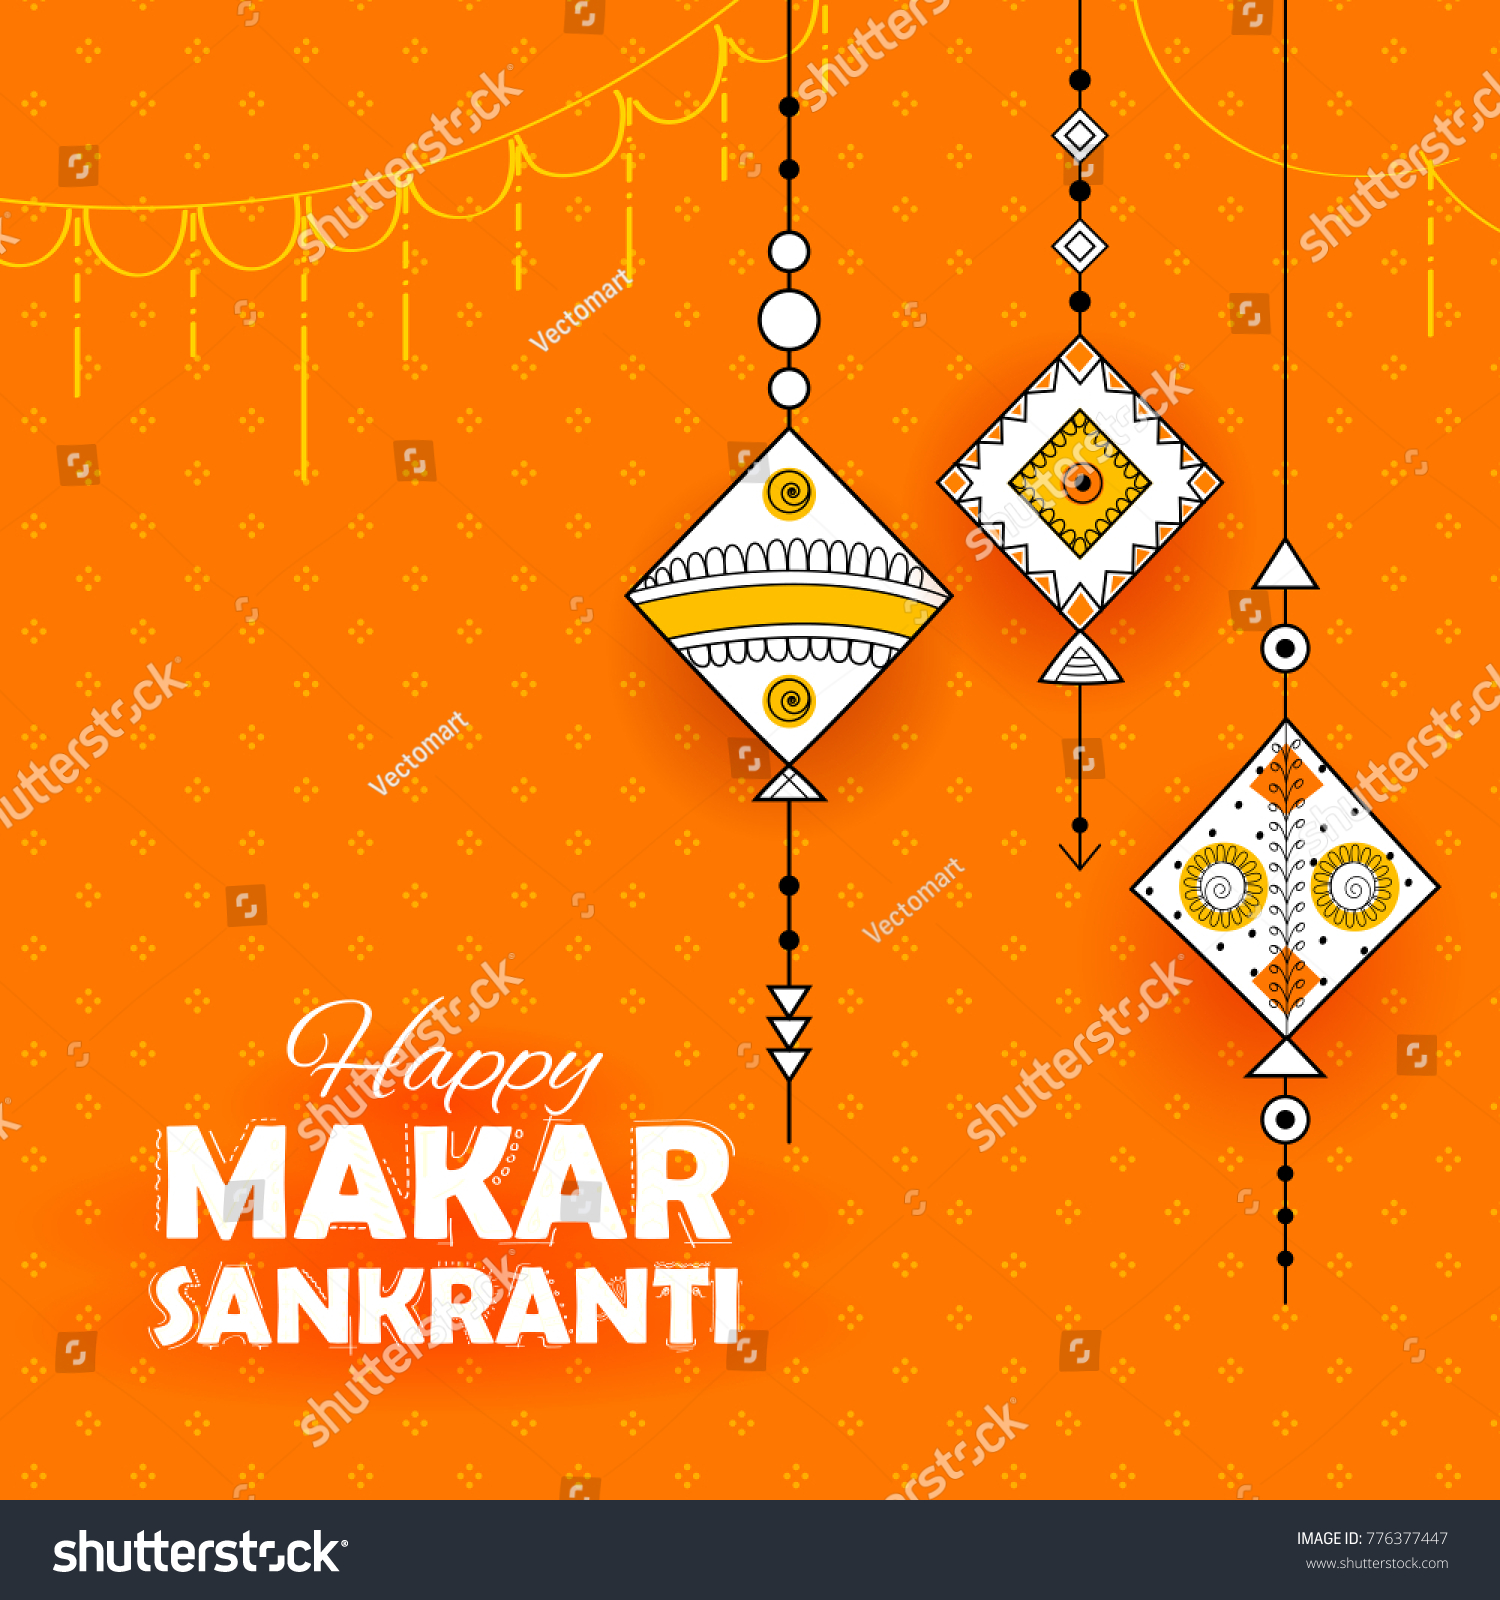 illustration happy makar sankranti wallpaper colorful stock vector royalty free 776377447 https www shutterstock com image vector illustration happy makar sankranti wallpaper colorful 776377447